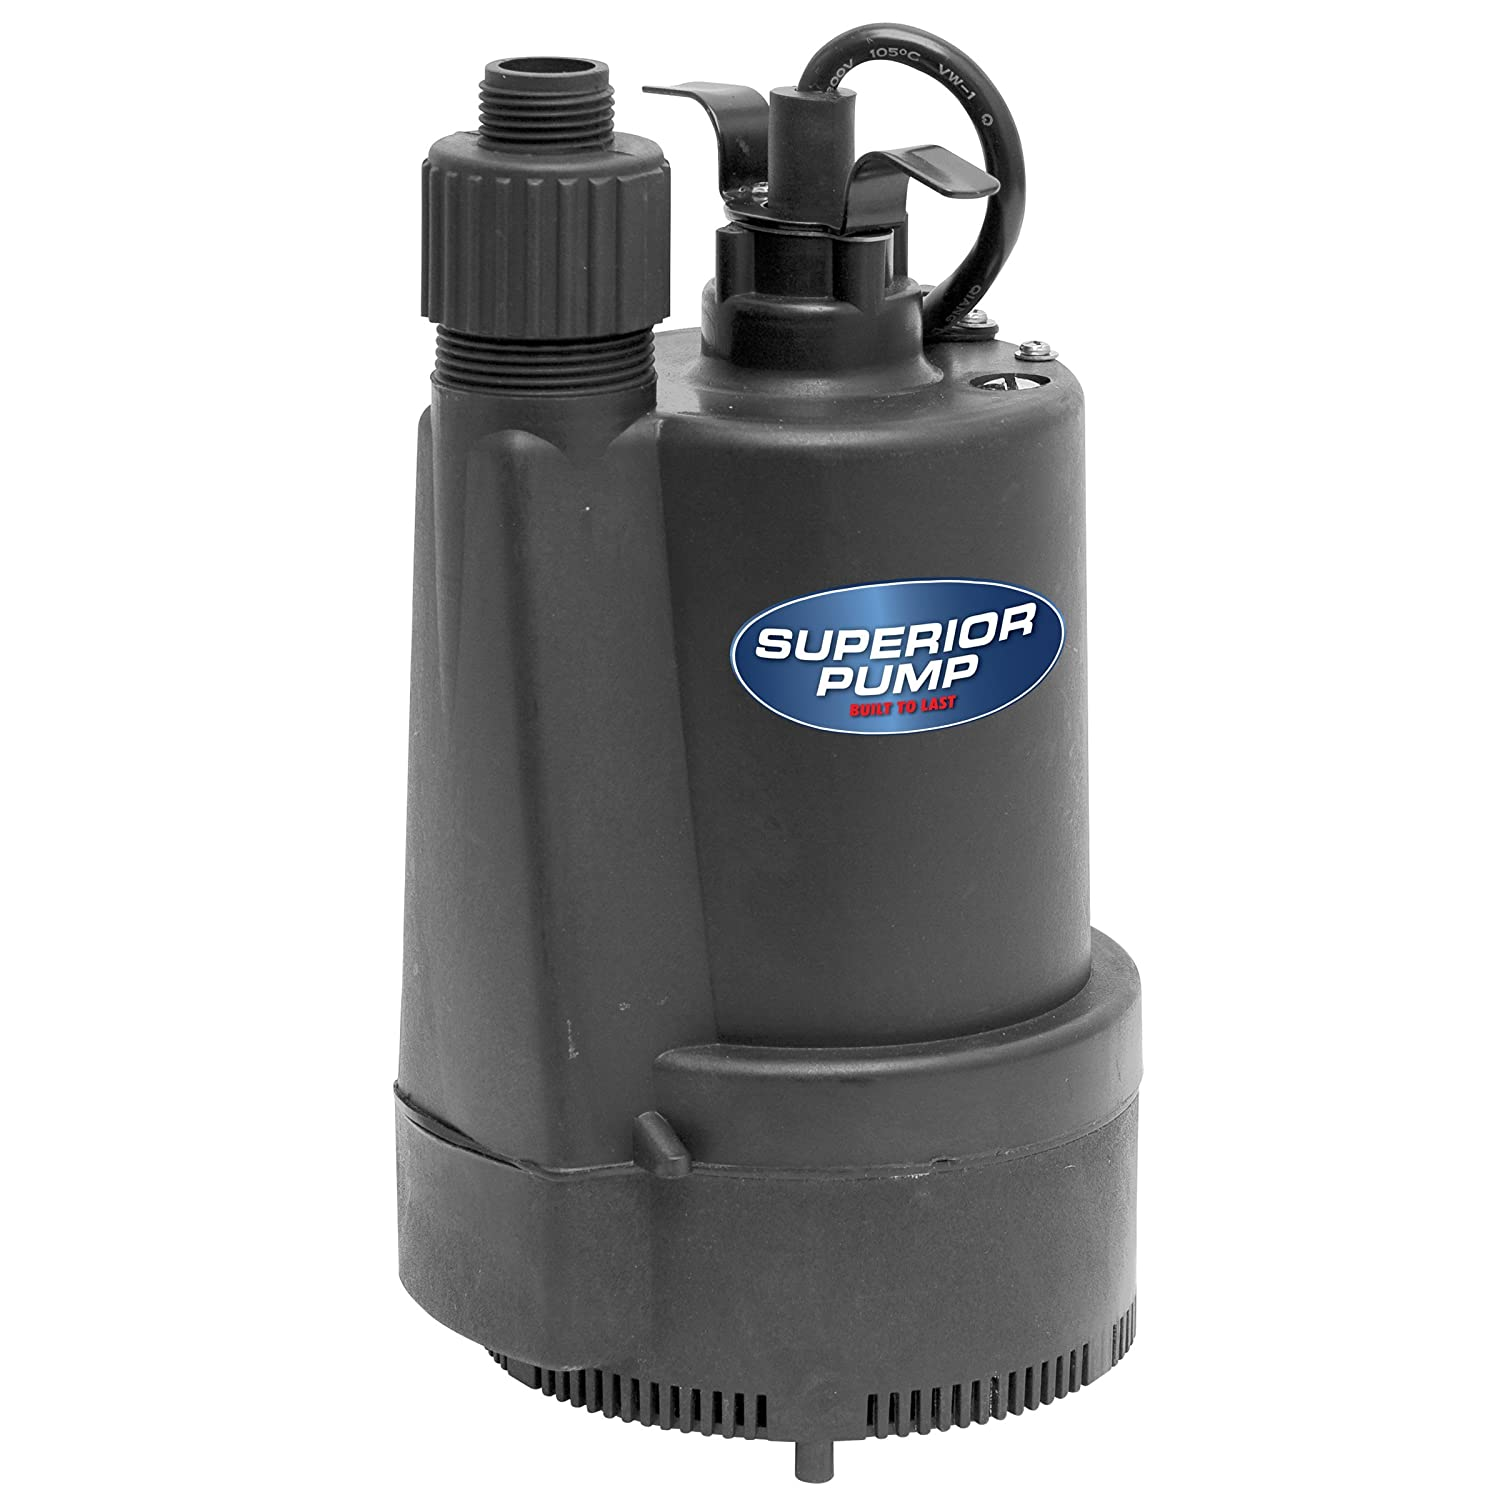 Superior Pump 91330 Utility Pump, 1/3 Horse Power, Black